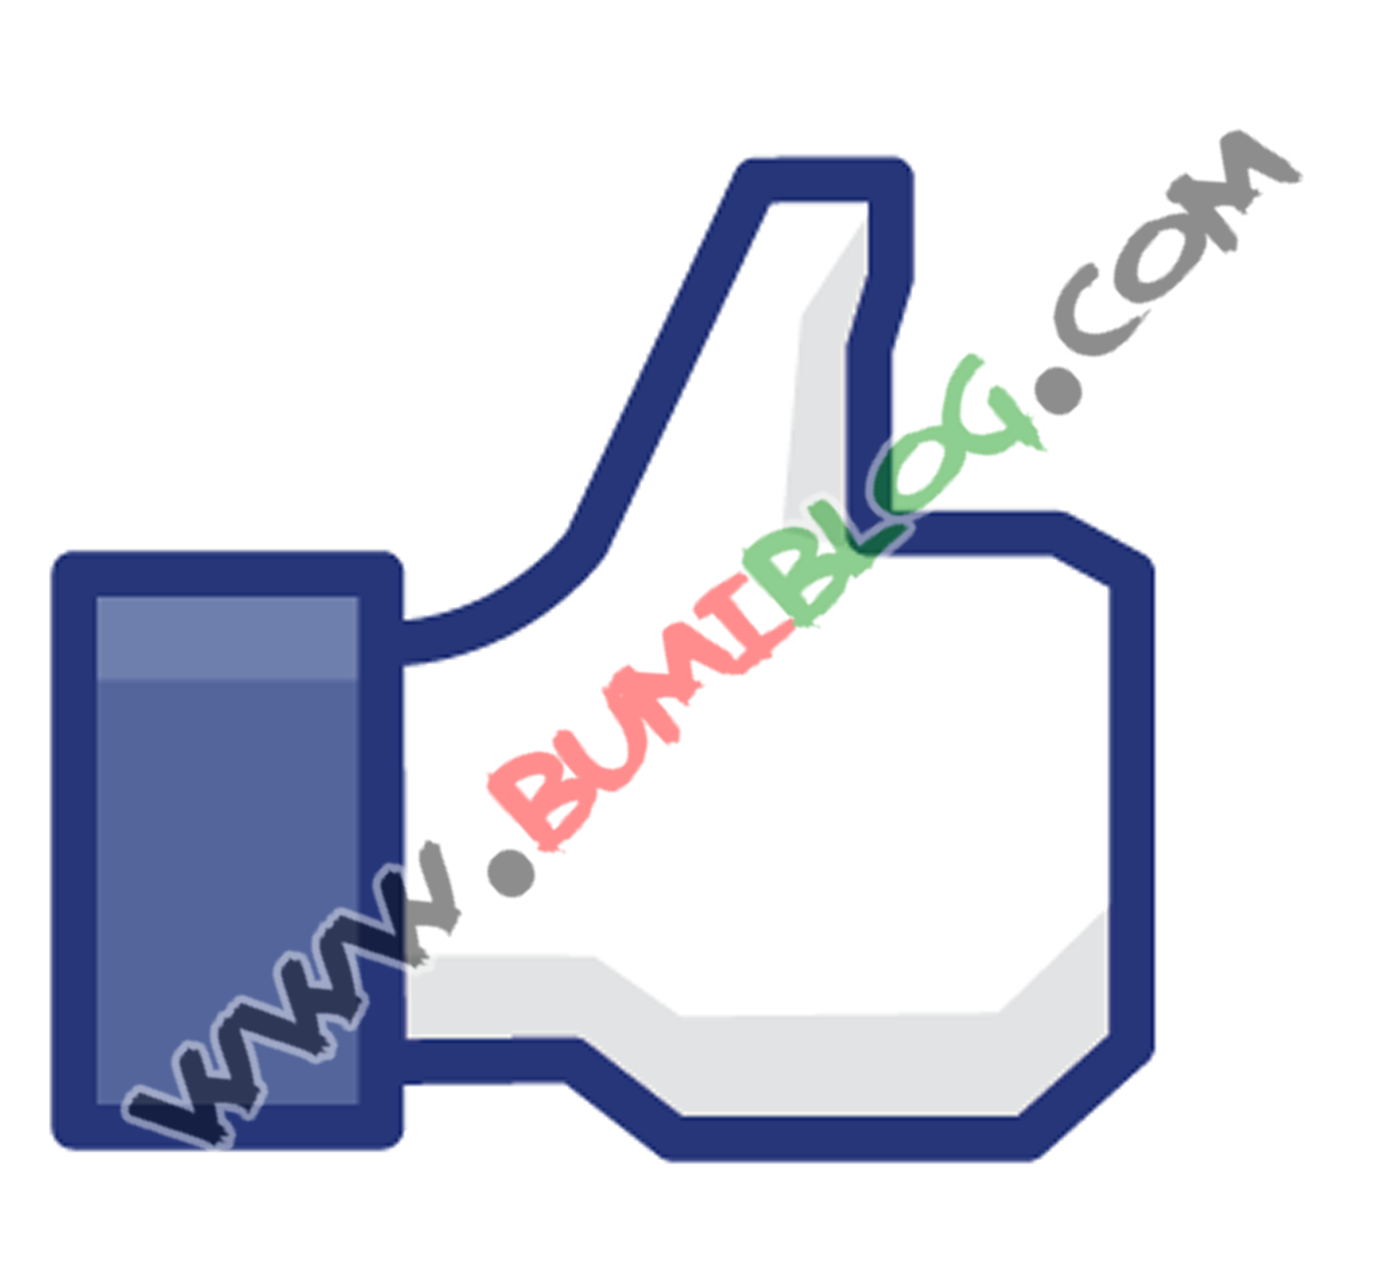 Cara Membuat Robot Like Facebook